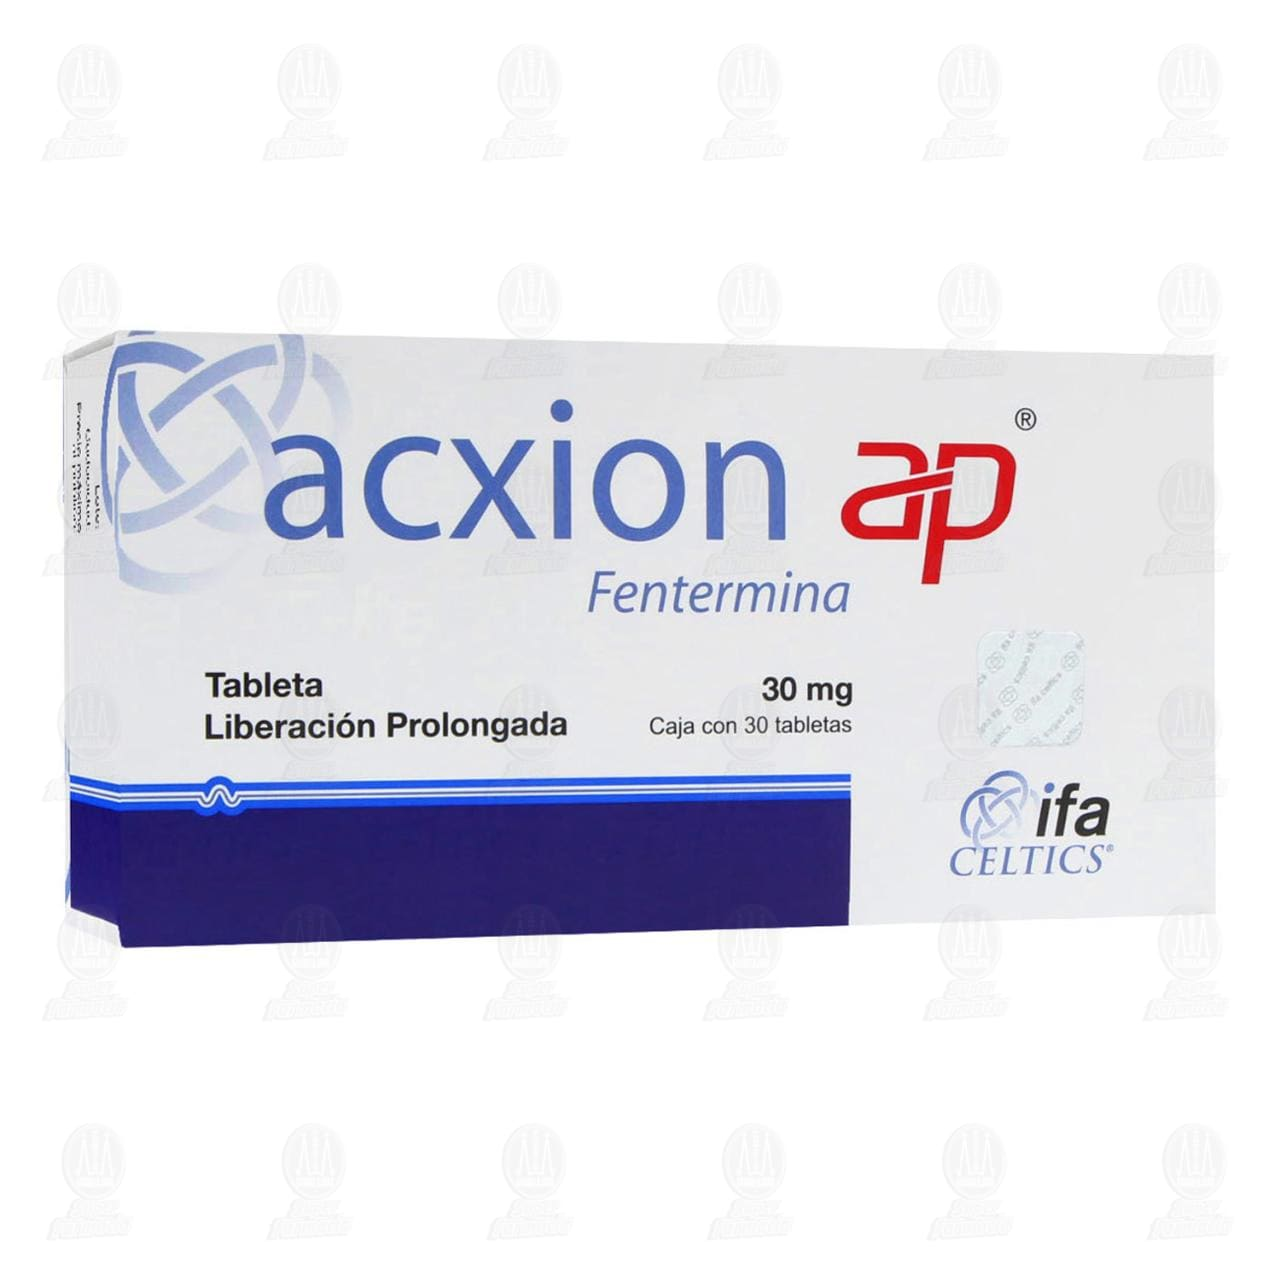 Acxion AP 30mg 30 Tabletas